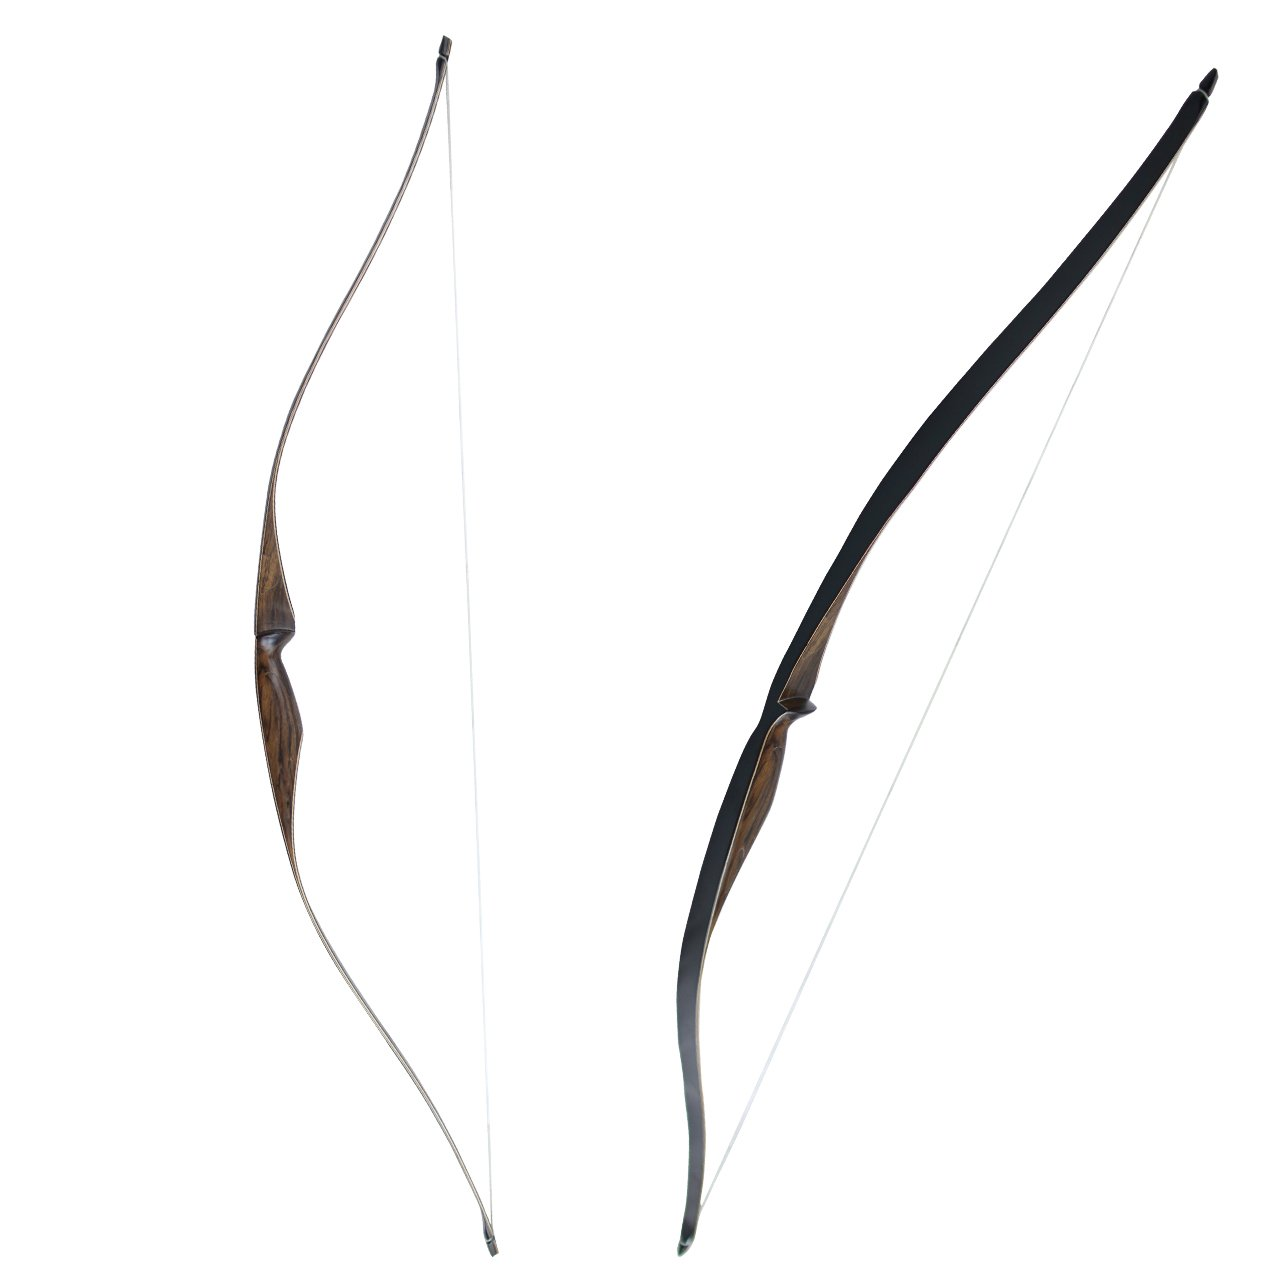 SinoArt Sparrow 54'' Traditional Long Bow 20 25 lbs Draw Weight One-Piece Longbows Recurve Bow Right Hands Beginner Women Tenns (Right Hand 20 lbs)